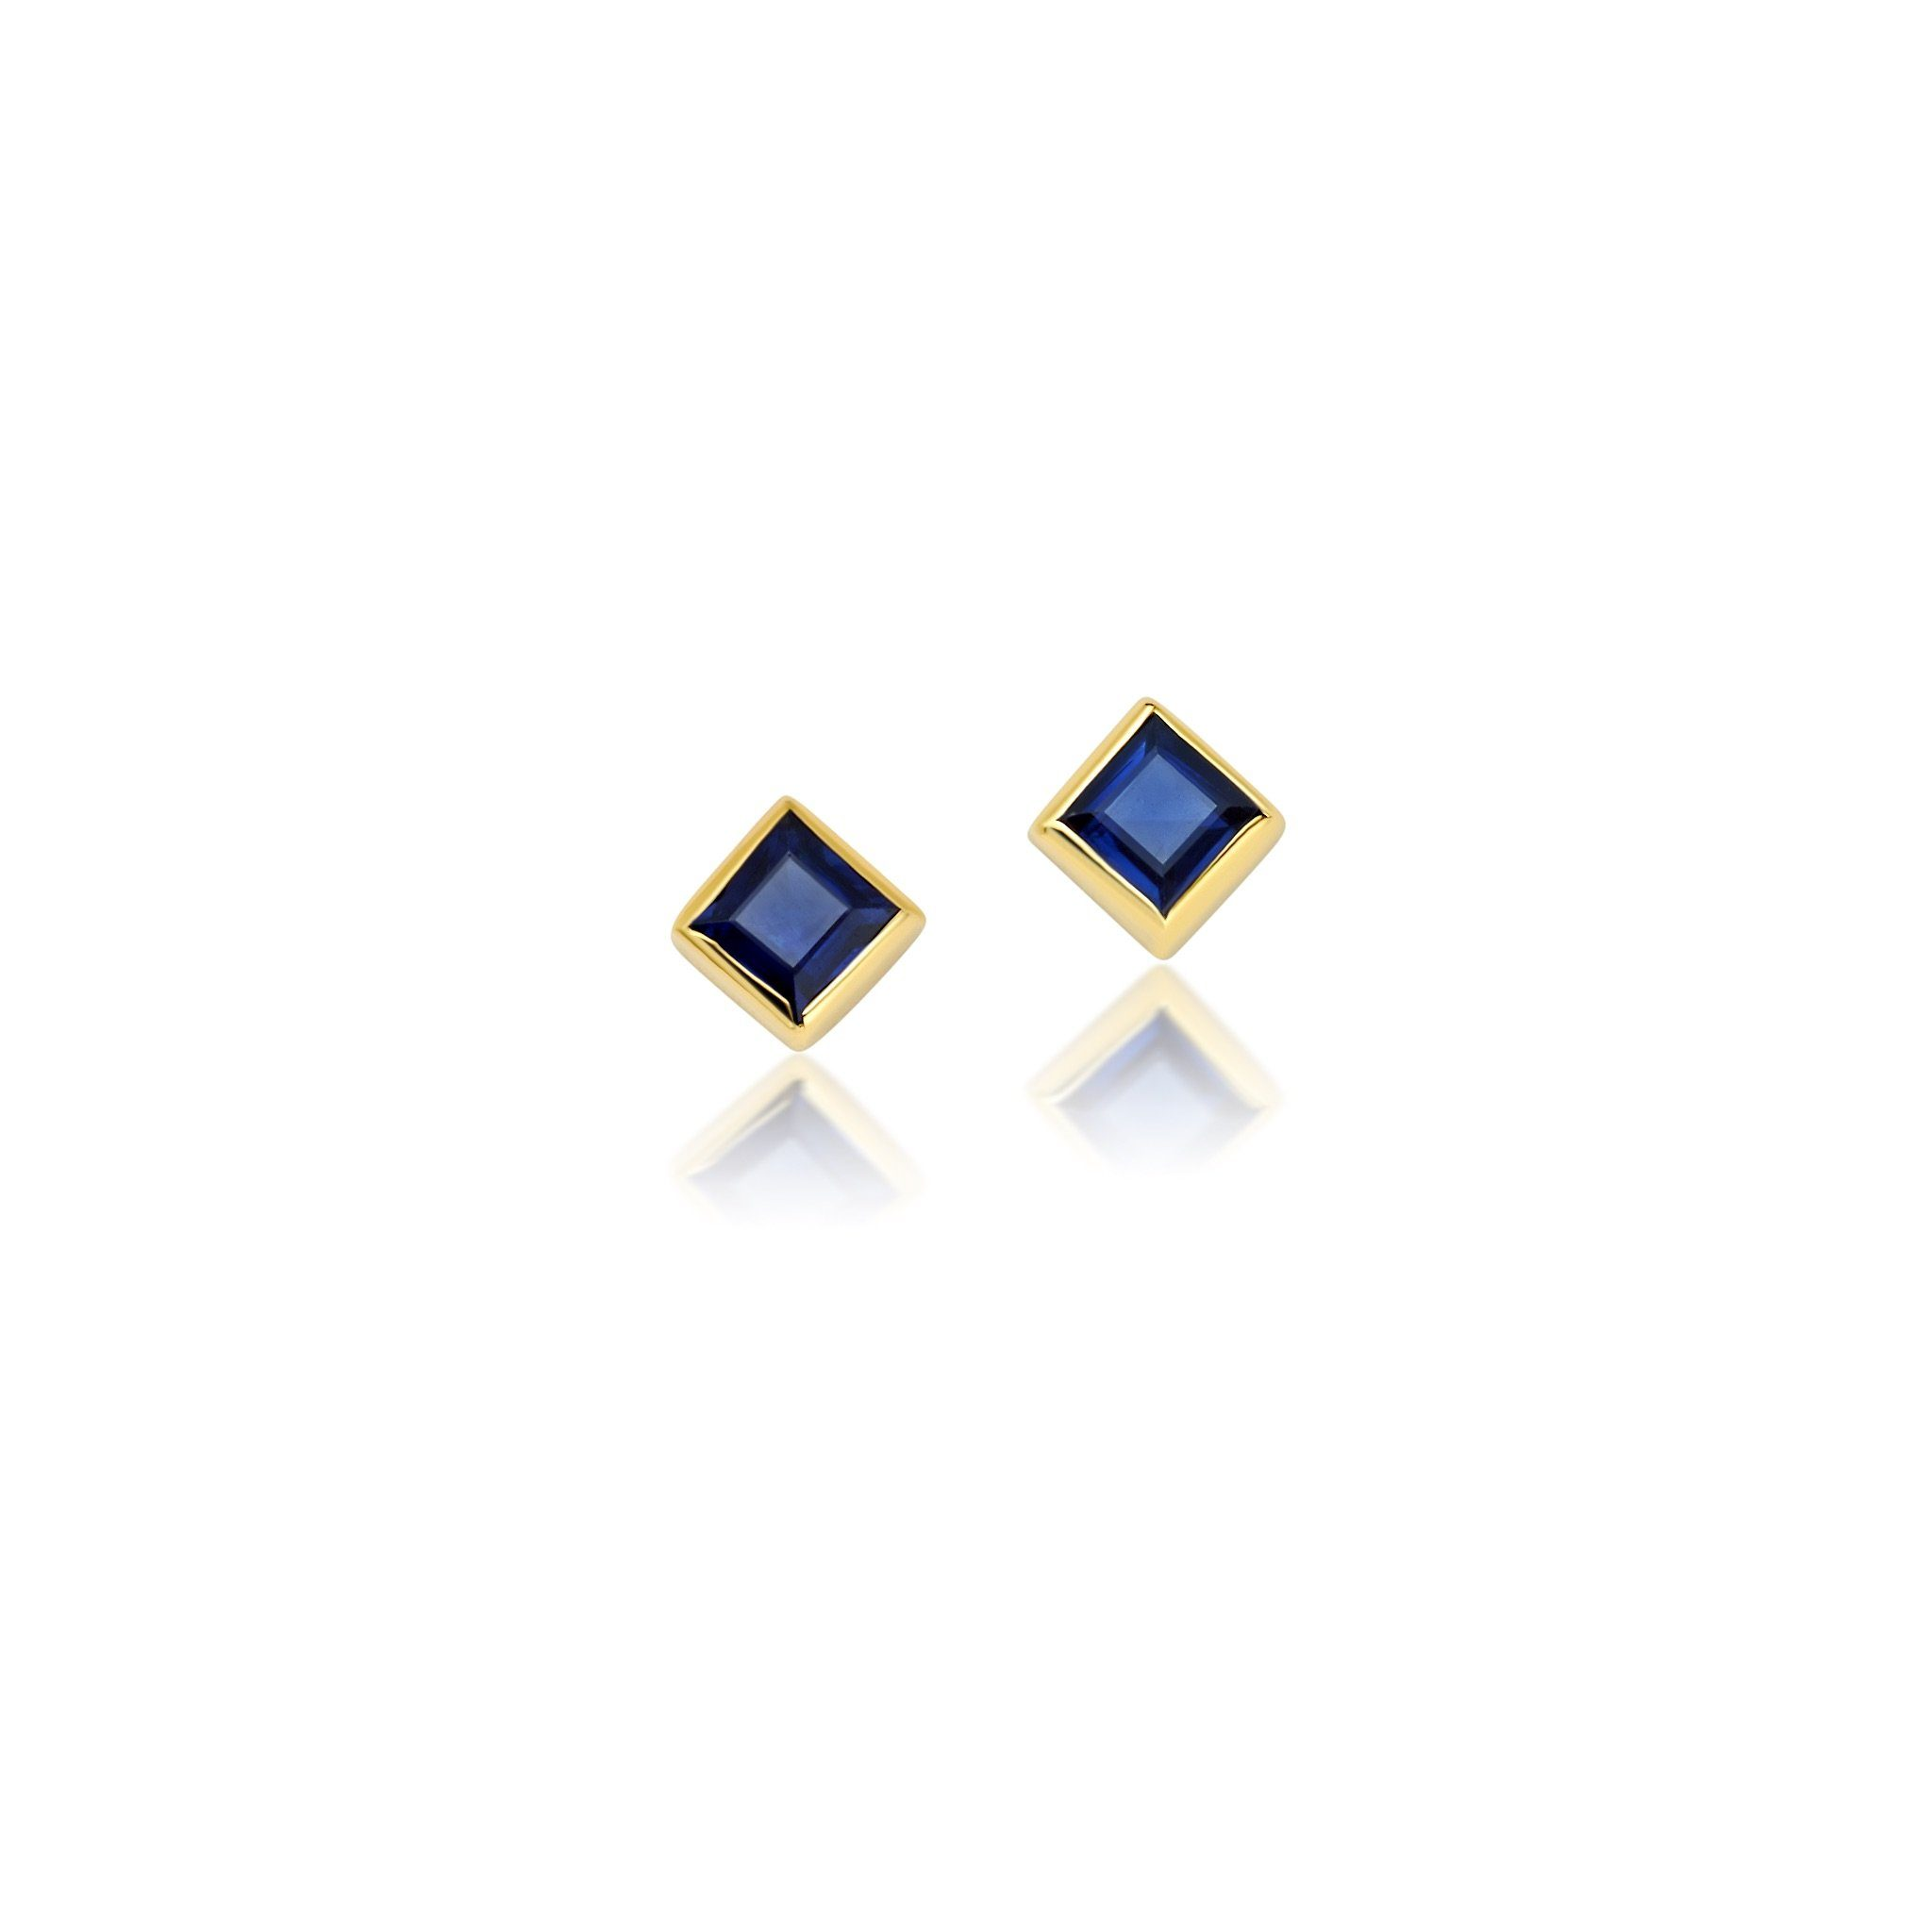 SAPPHIRE SQUARE STUD EARRINGS Jewelry Bayou with Love